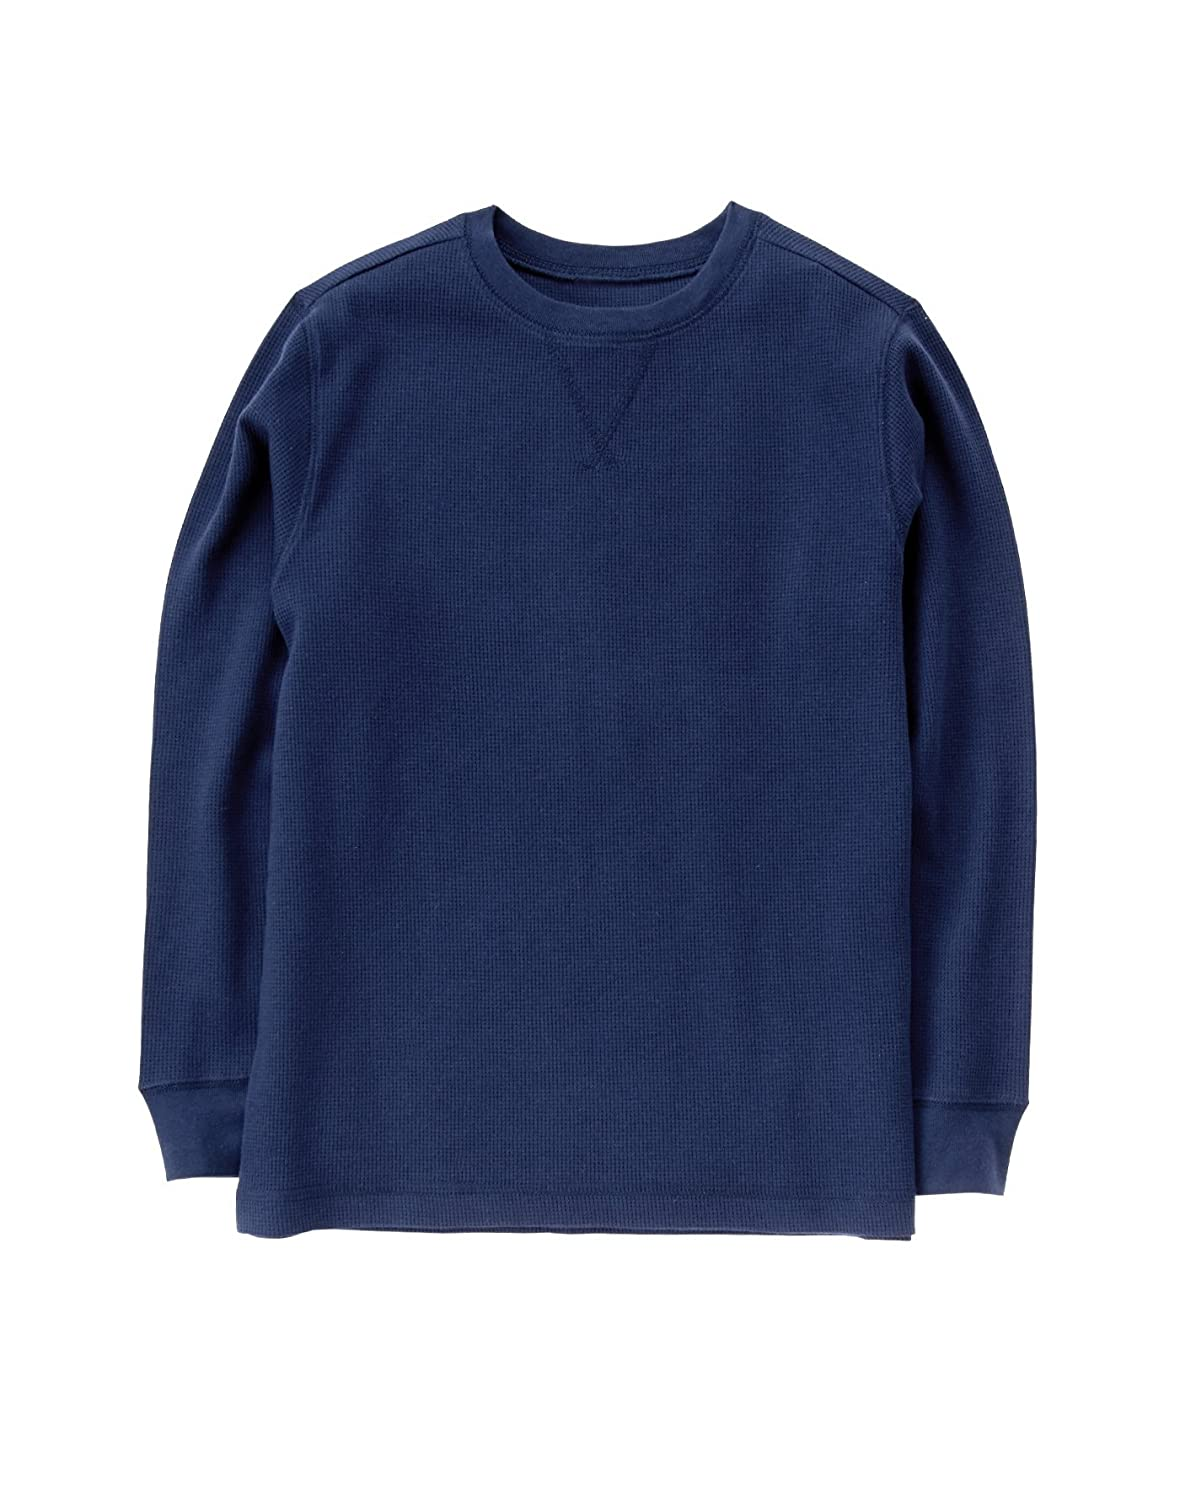 Crazy 8 SHIRT ボーイズ Small Handsome Navy B075D73483